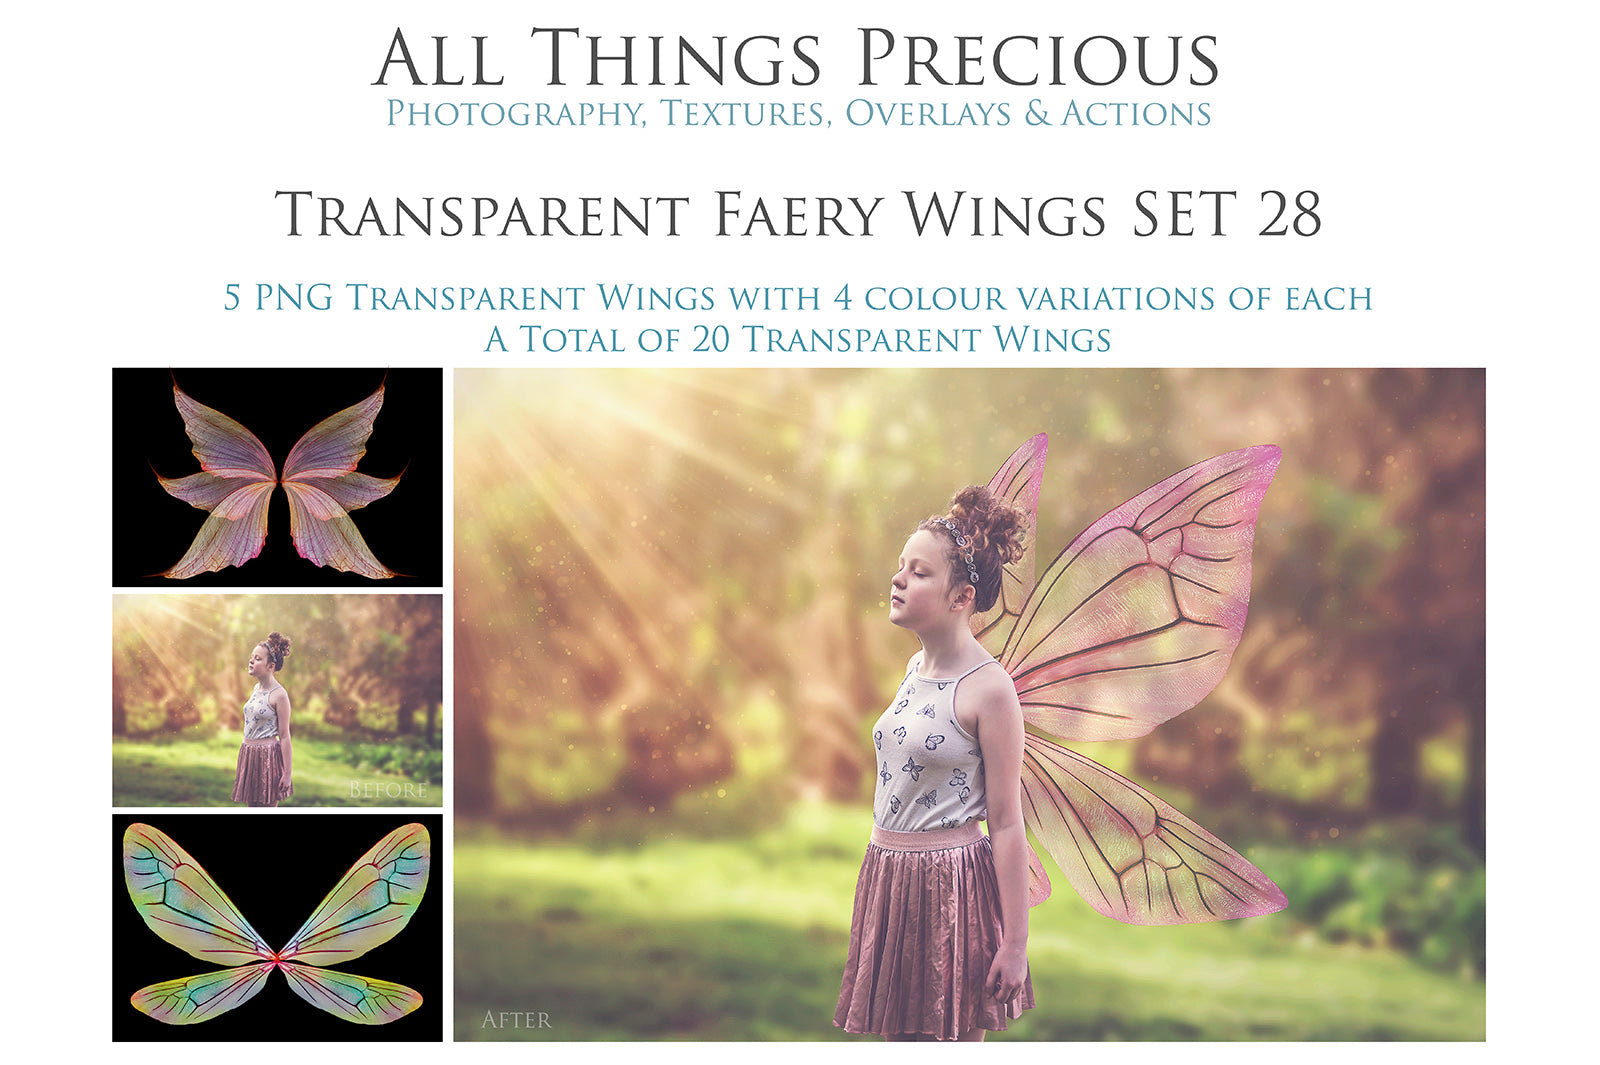 20 Png TRANSPARENT FAIRY WING Overlays Set 28